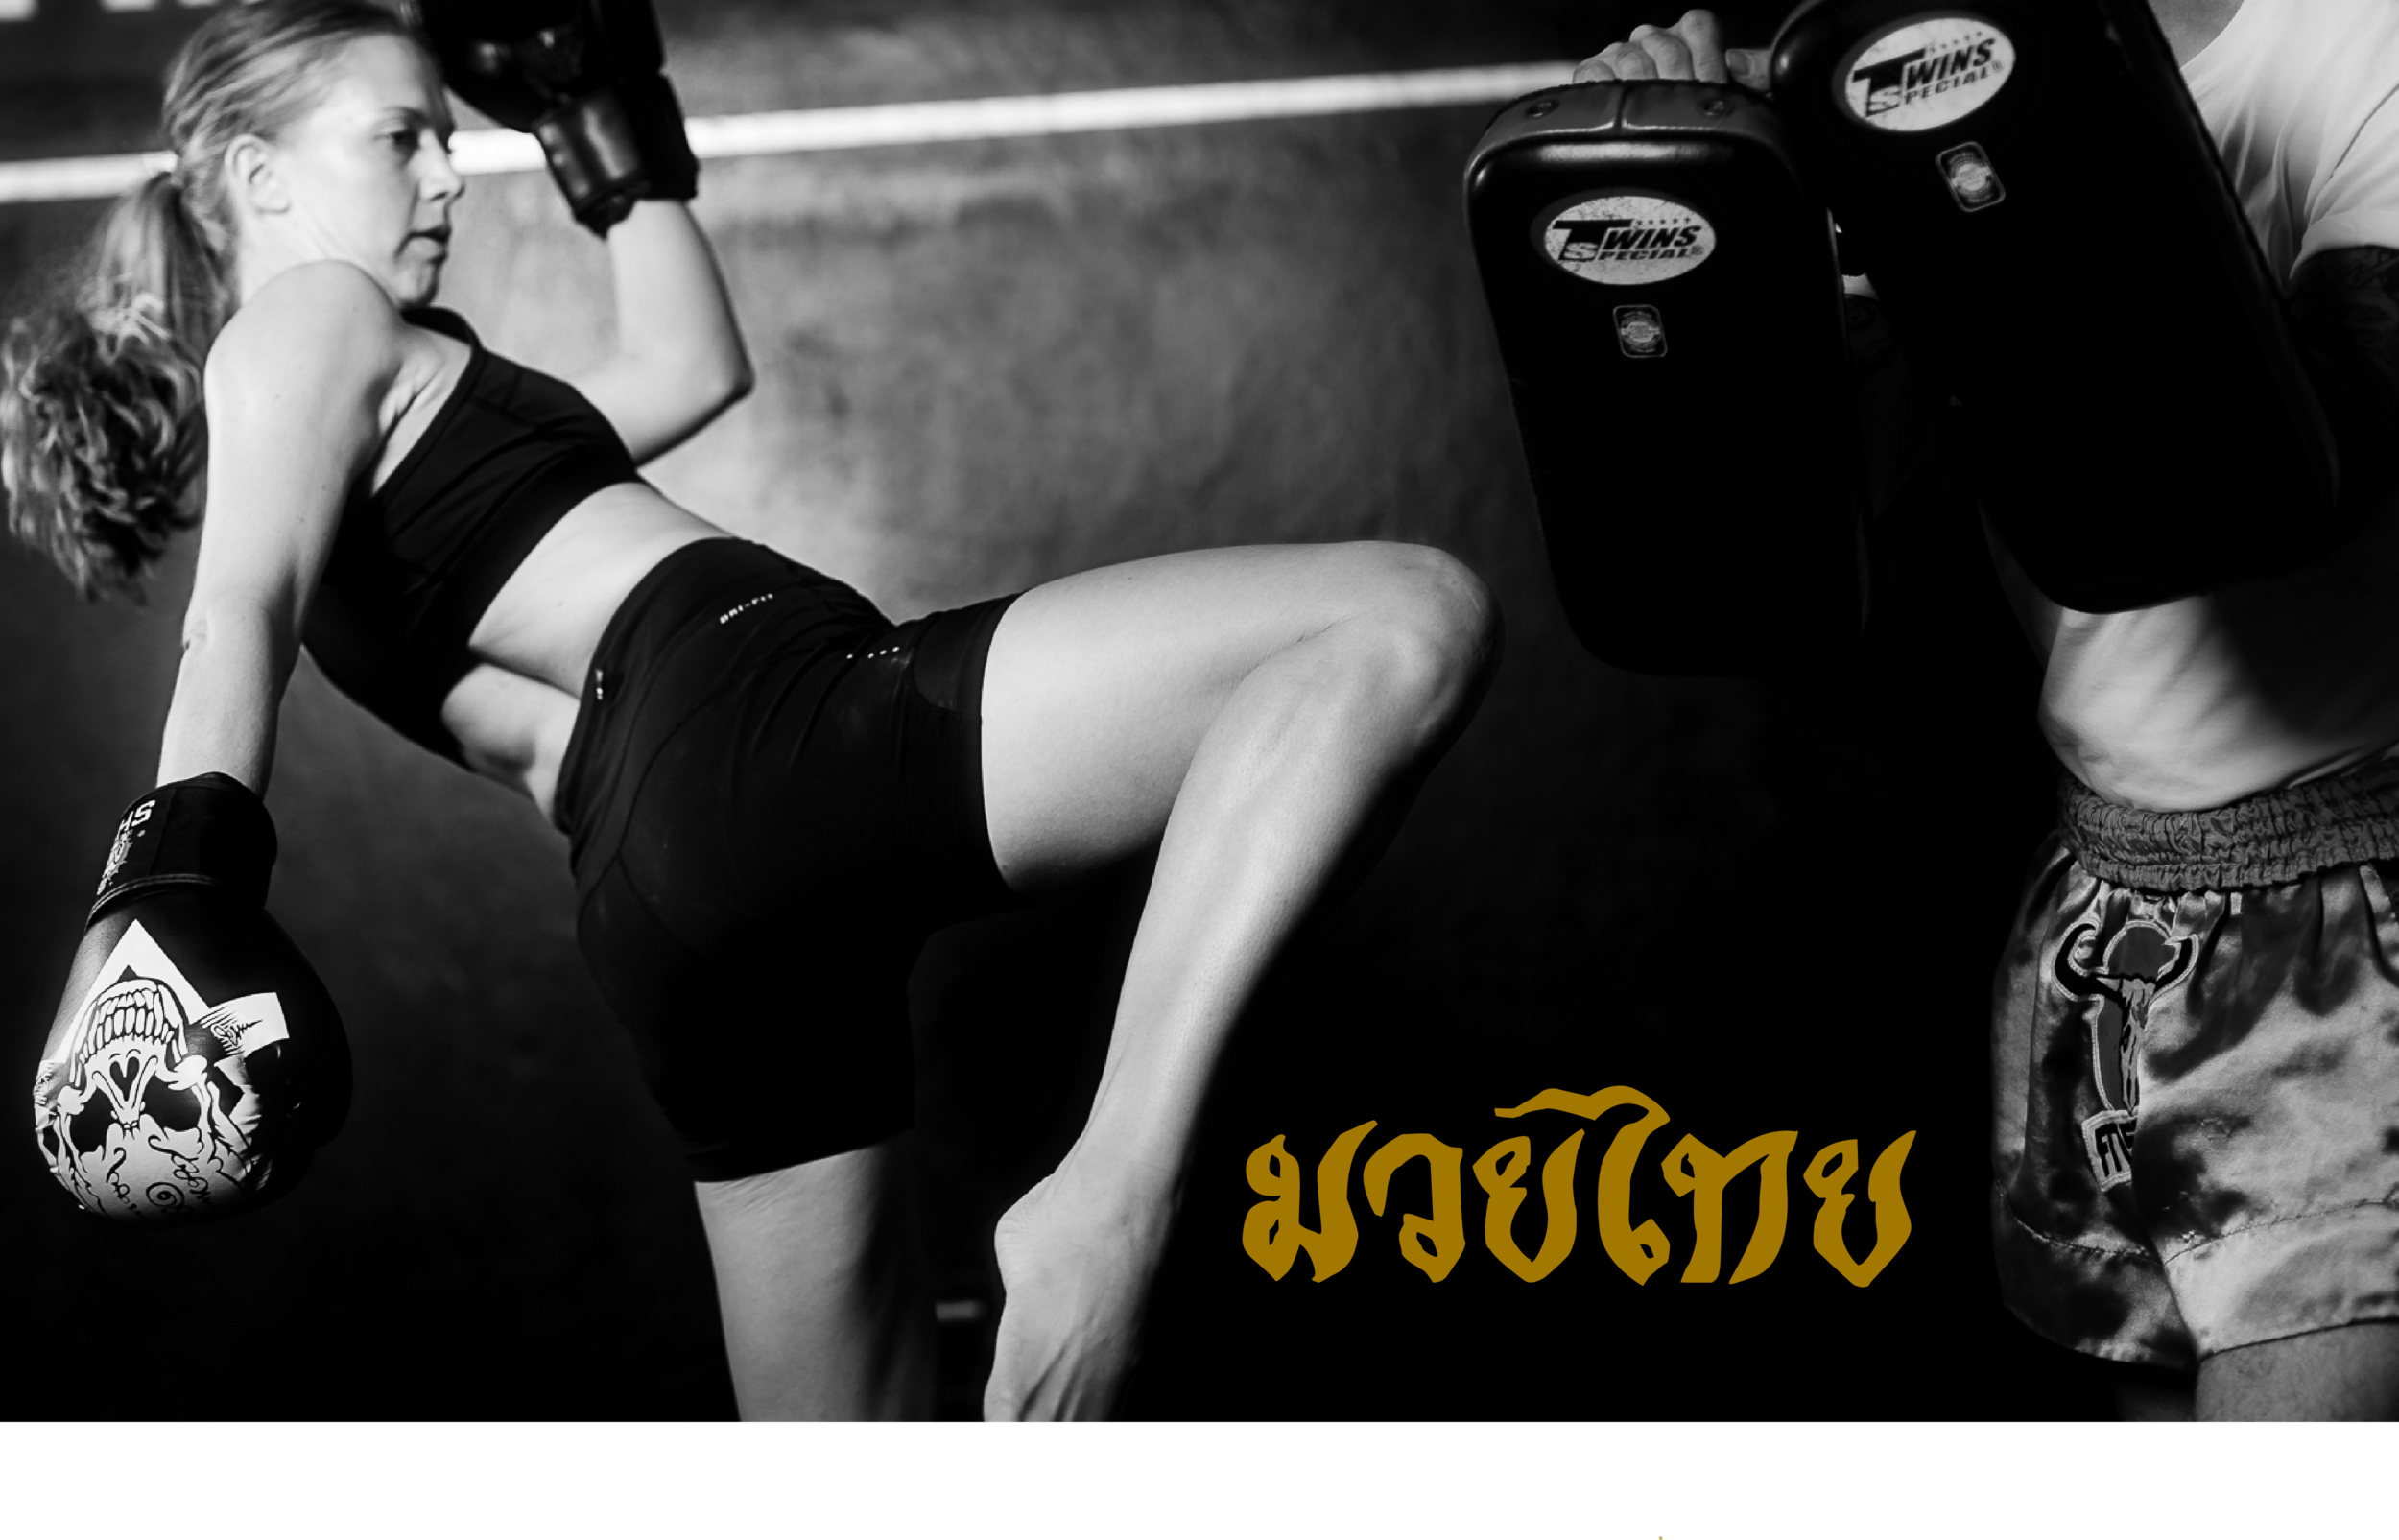 MUAY THAI - THE NATIONAL FIGHTING SPORT OF THAILAND